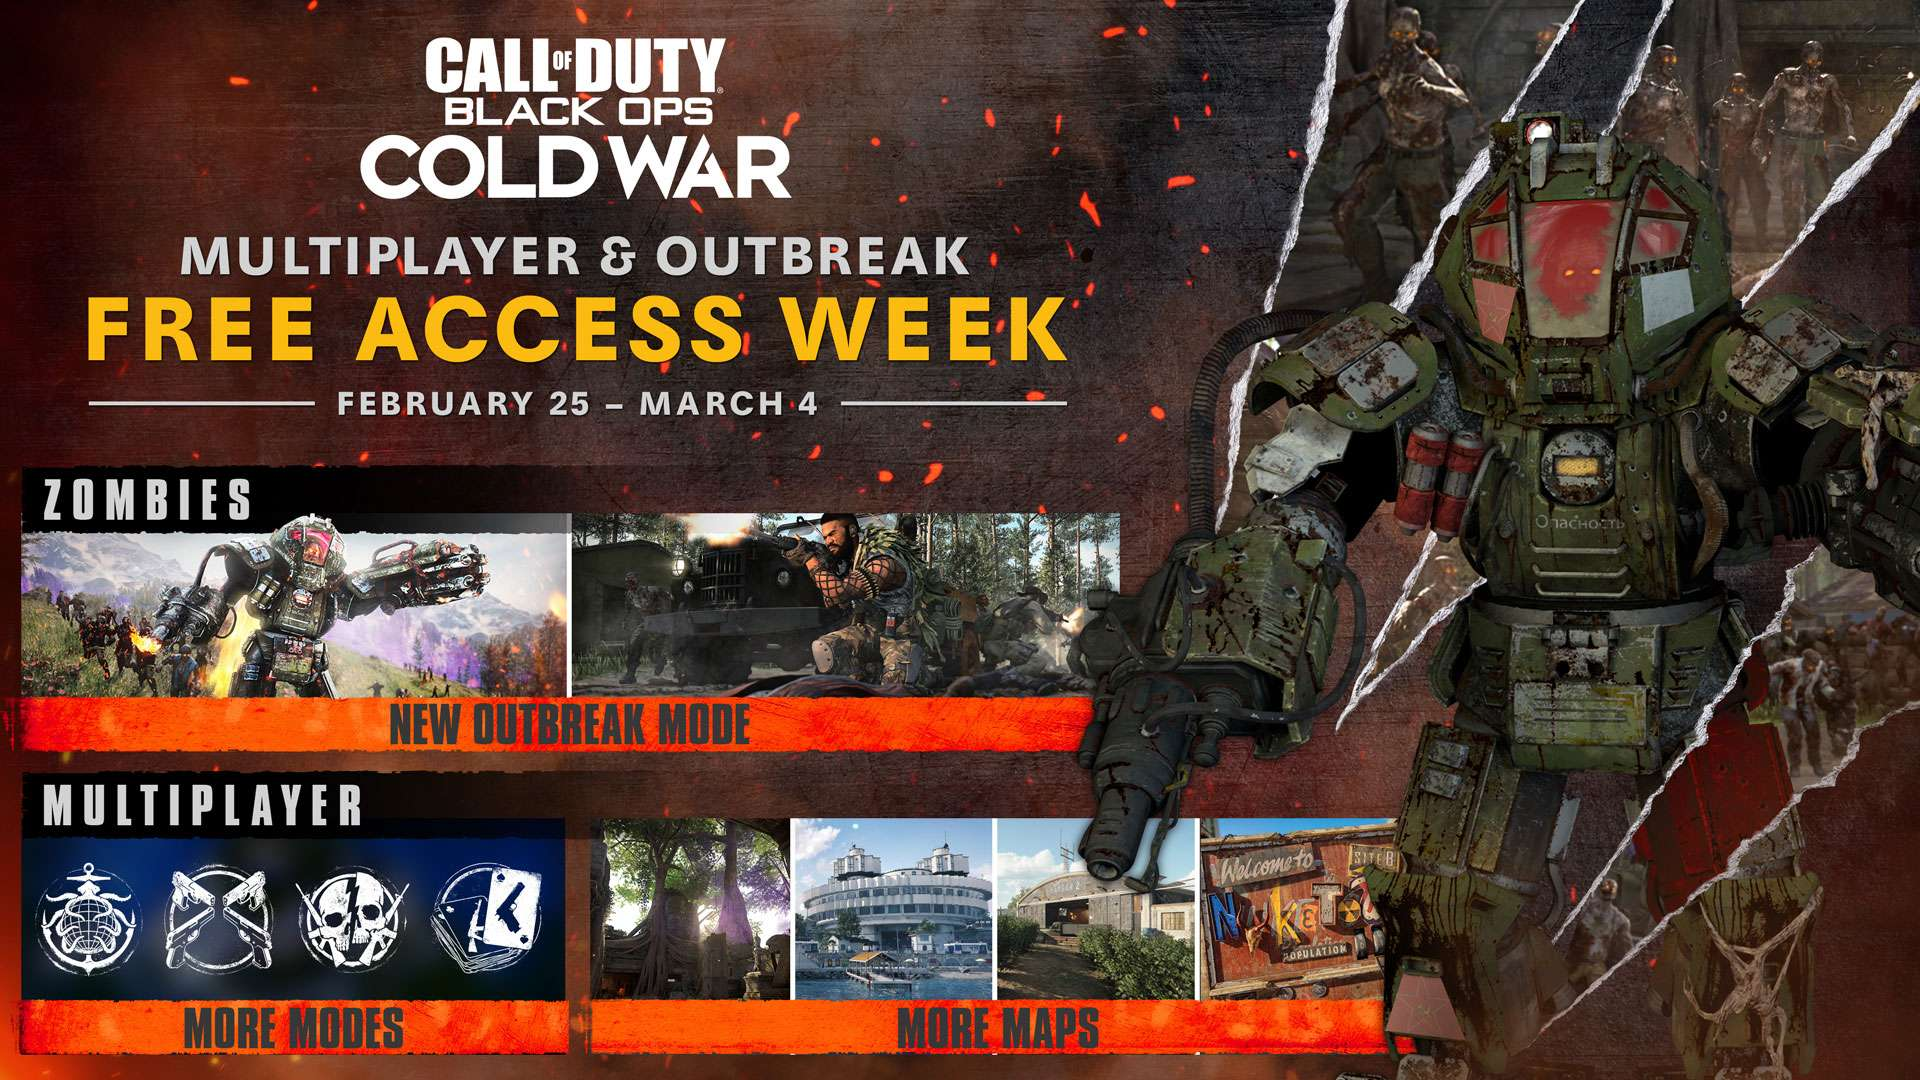 Call of Duty Black Ops Cold War multiplayer free